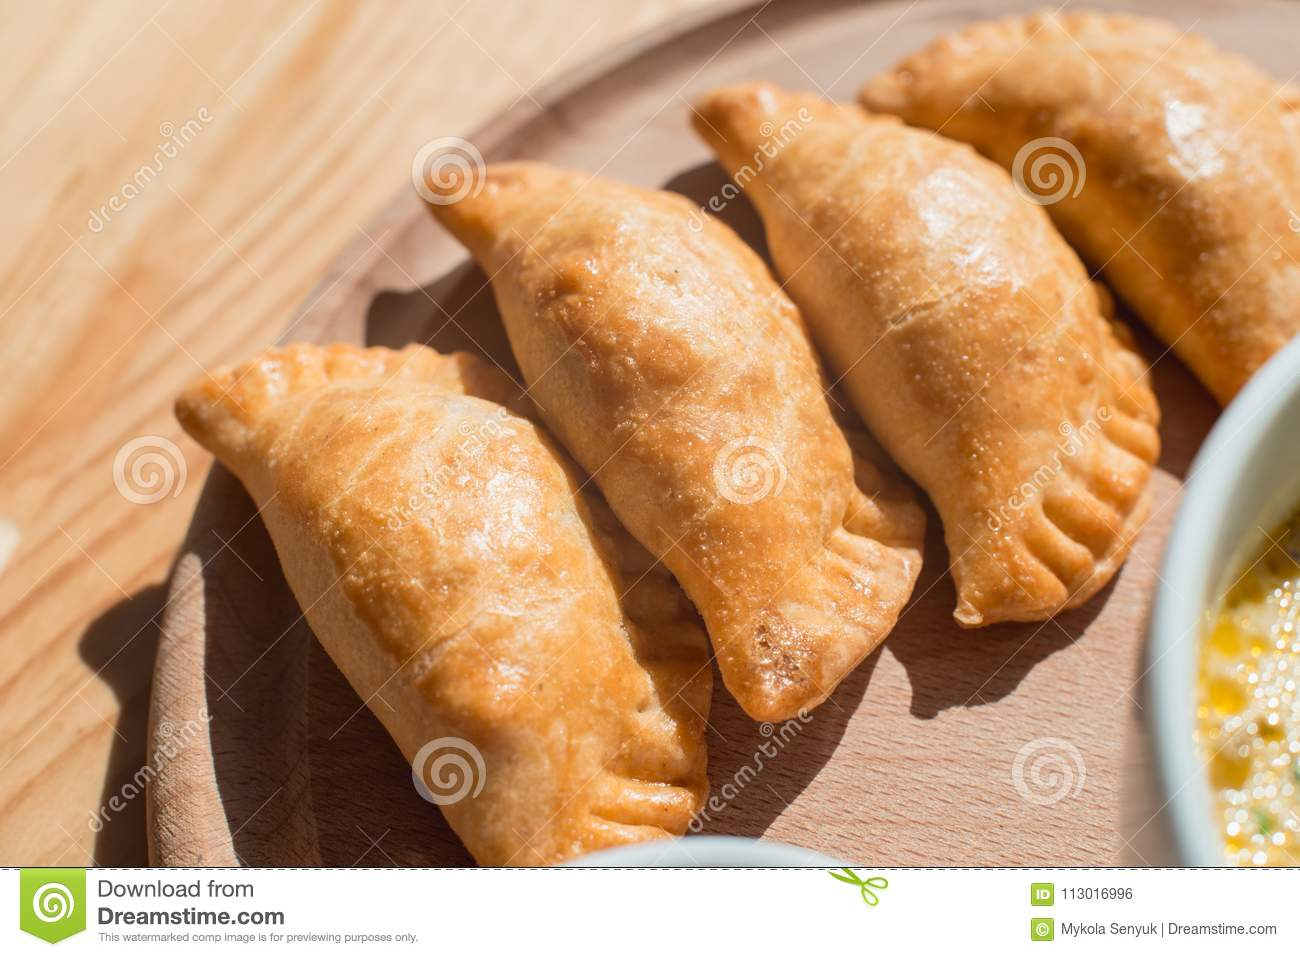 Cuisine Argentina A Delicious Empanadas With Chicken Meat Typical Dish Of Argentinean